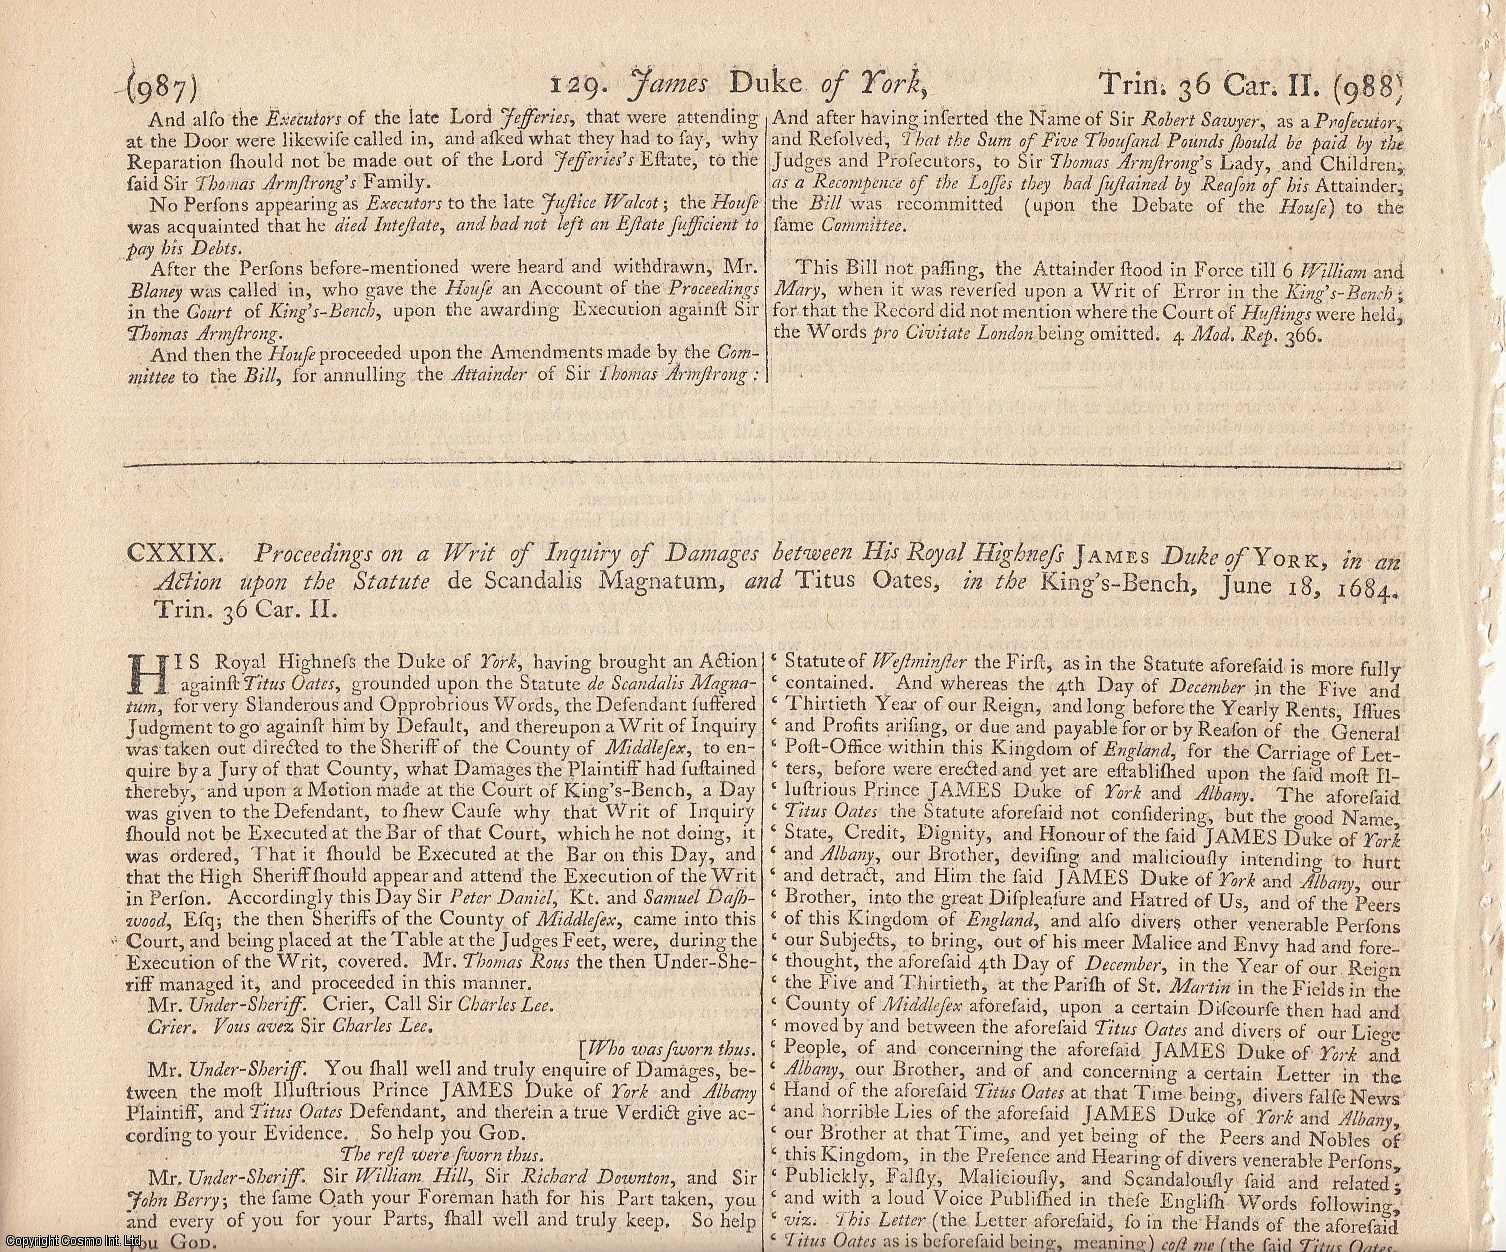 [TRIAL]. - POPISH PLOT - TITUS OATES. Proceedings on a Writ of Inquiry of Damages between His Royal Highness James, Duke of York, in an Action upon the Statute de Scandalis Magnatum, and Titus Oates, in the King's Bench, June 18 1684.